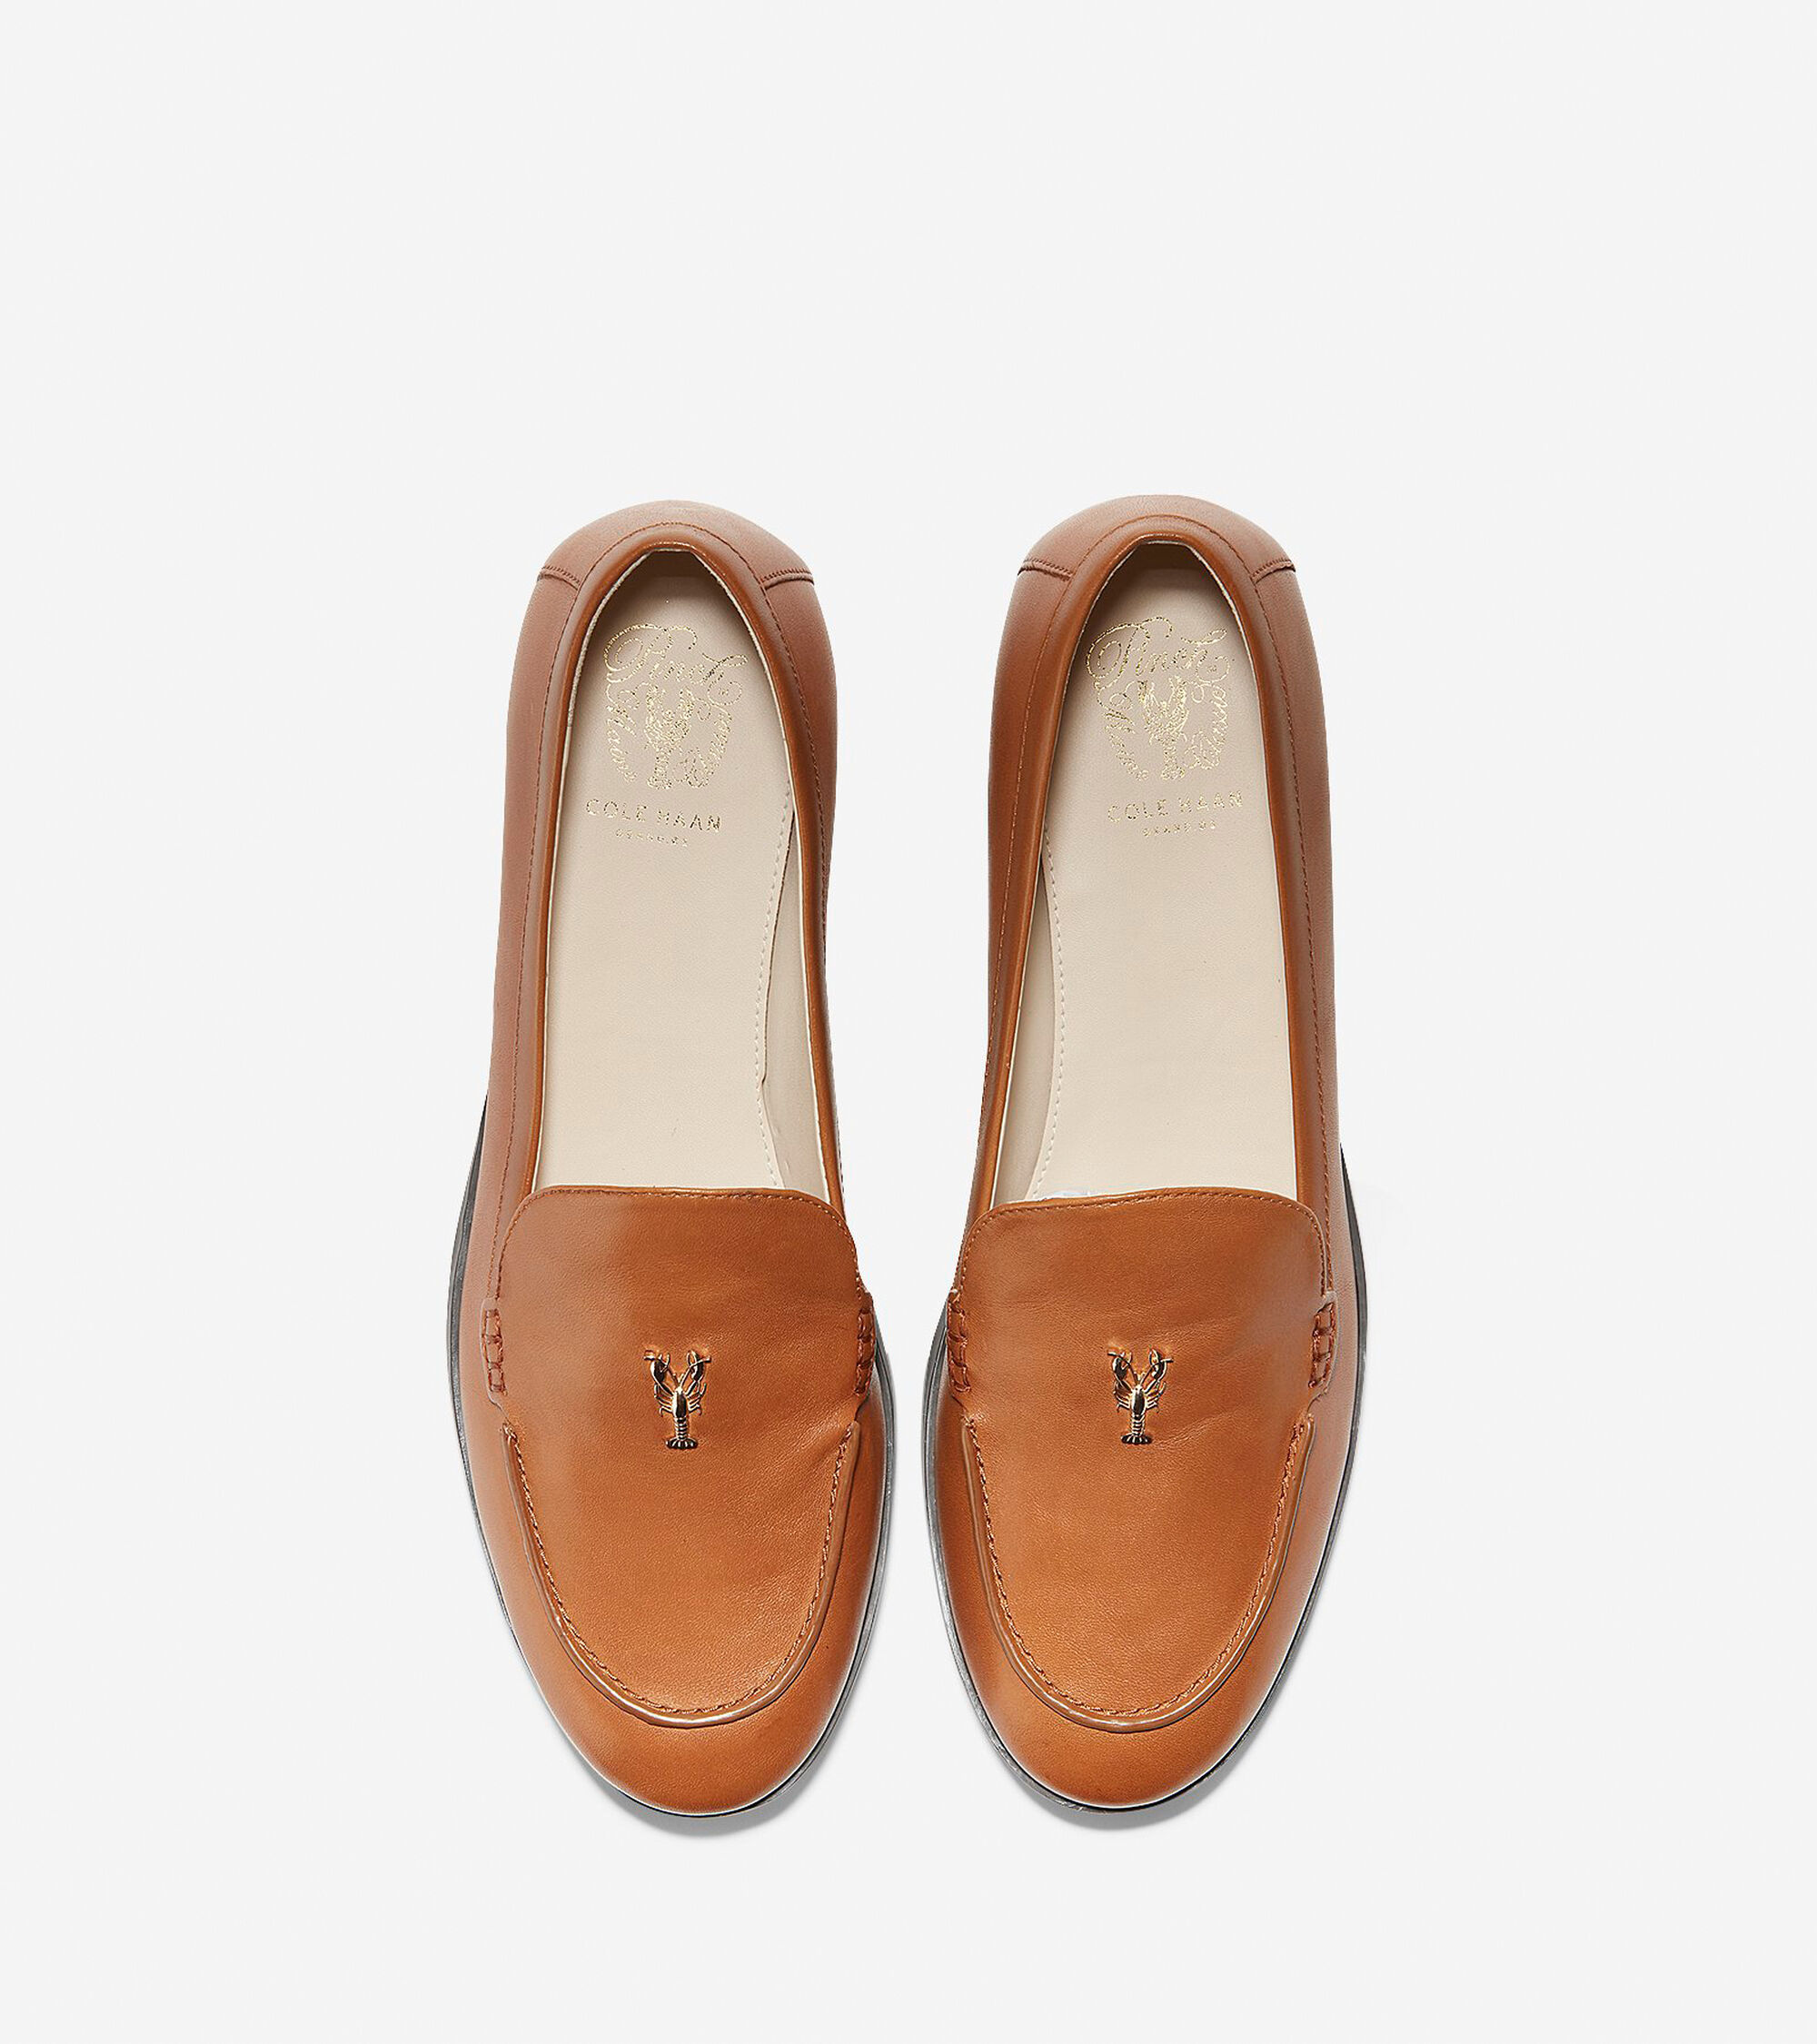 339359bb232 Women s Pinch Lobster Loafers in British Tan